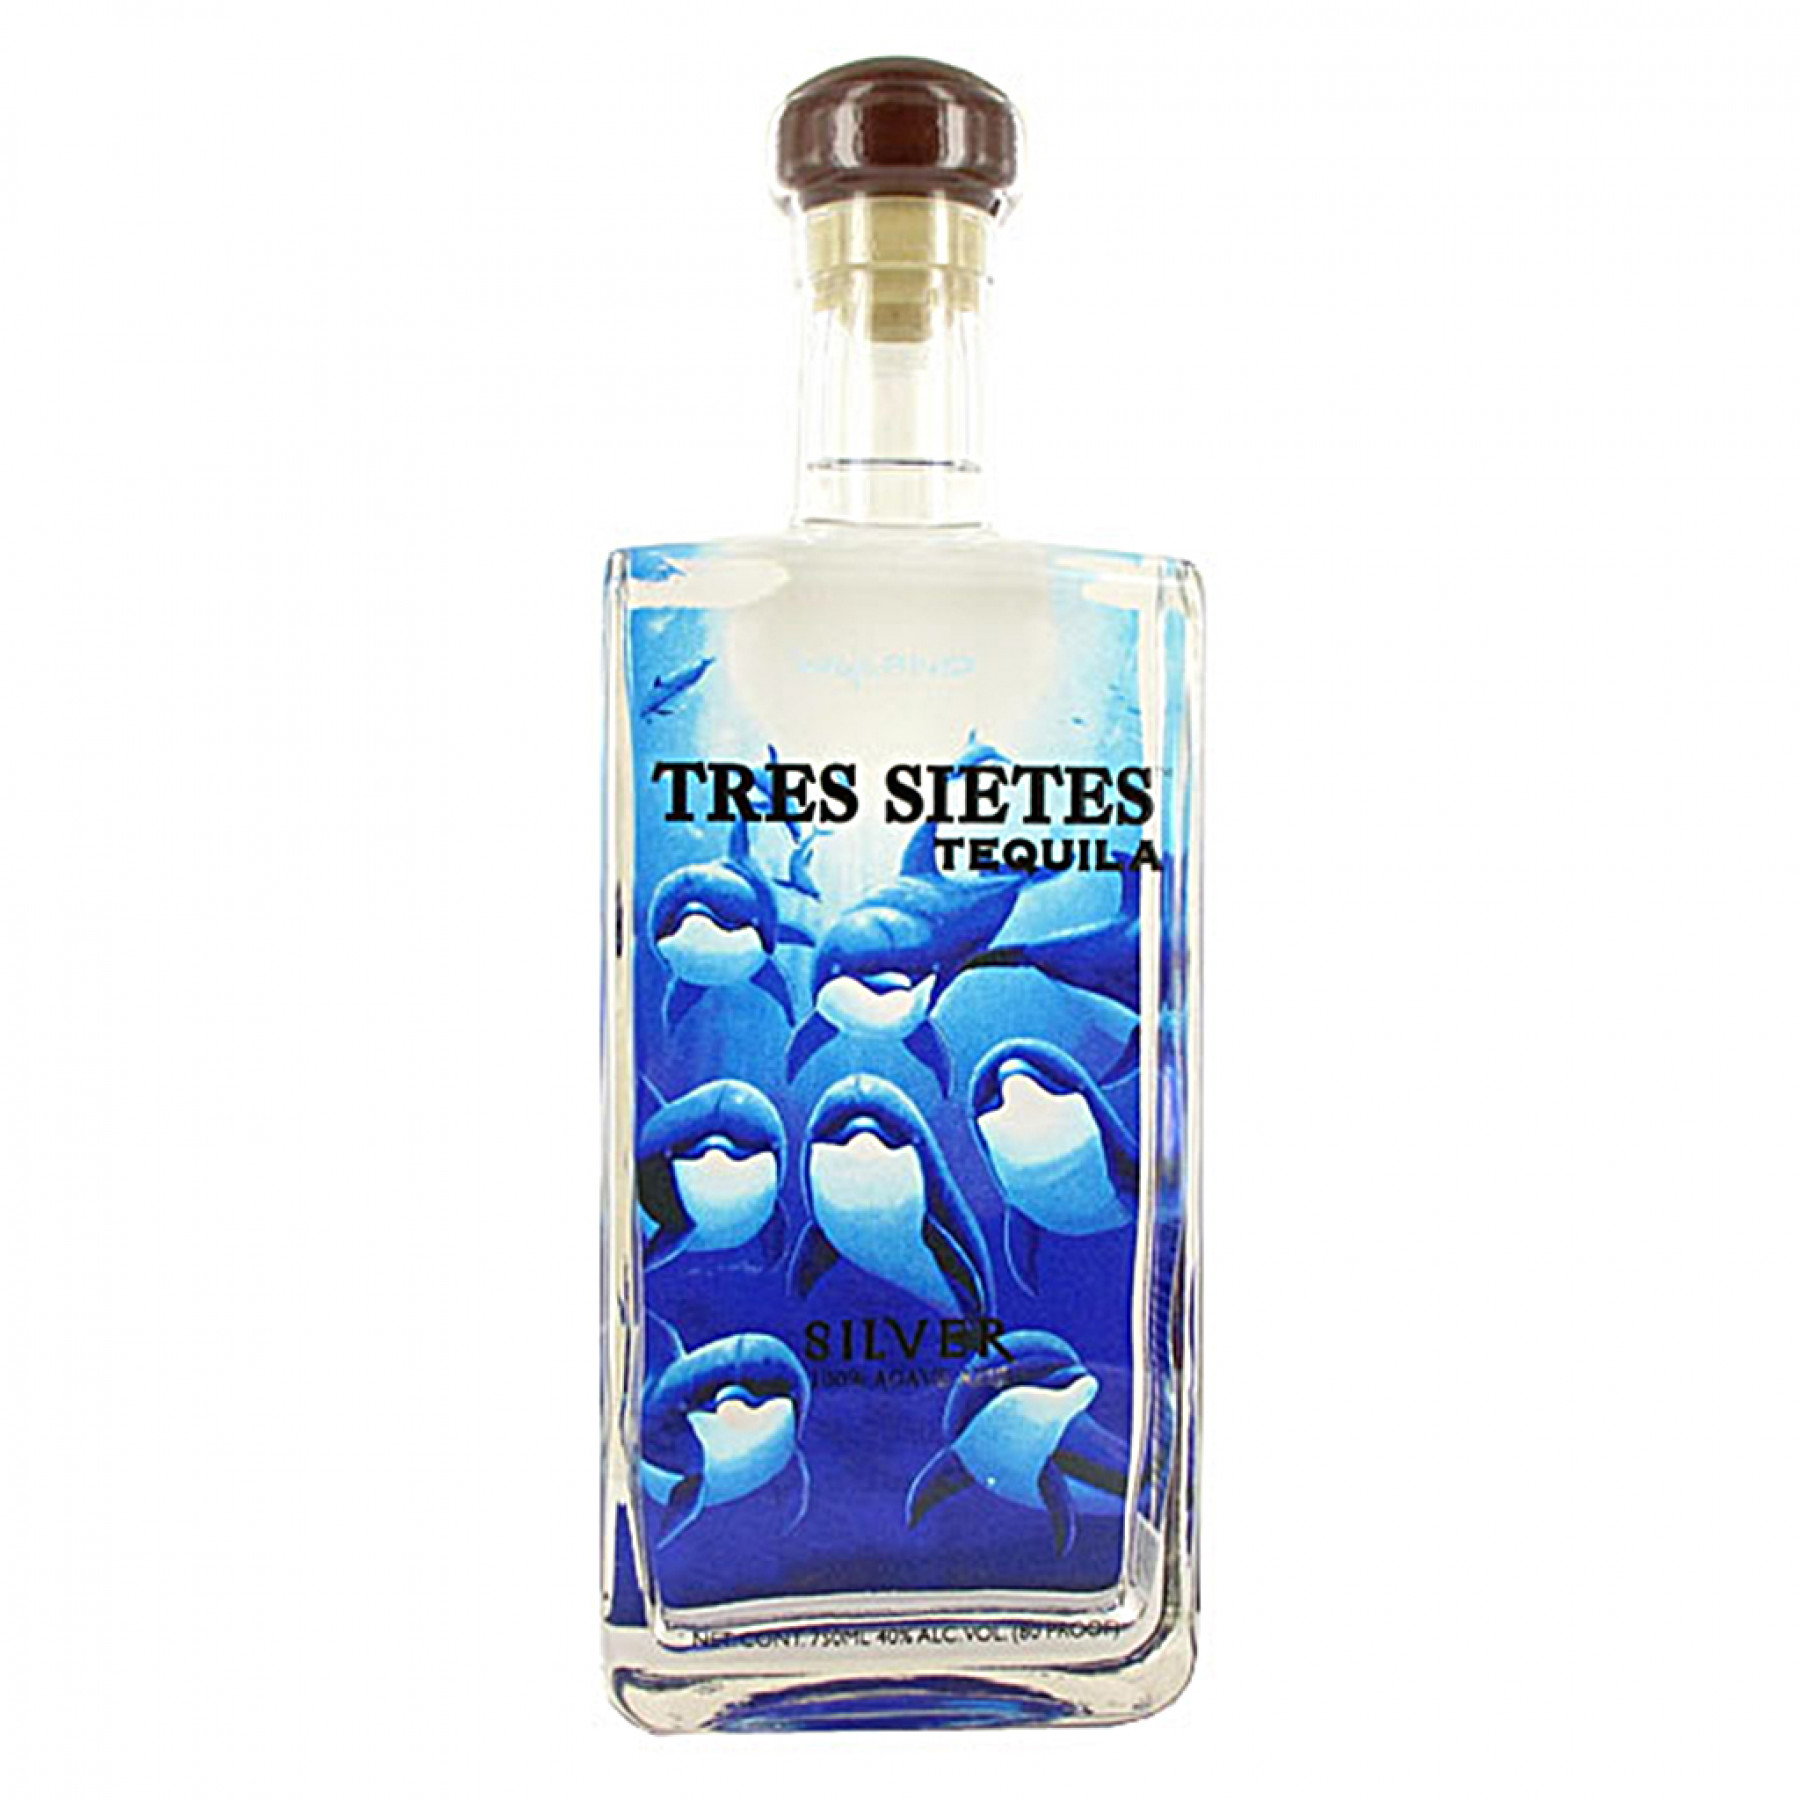 Tres Sietes Silver Dolphin Limited Wyland Edition 750mL